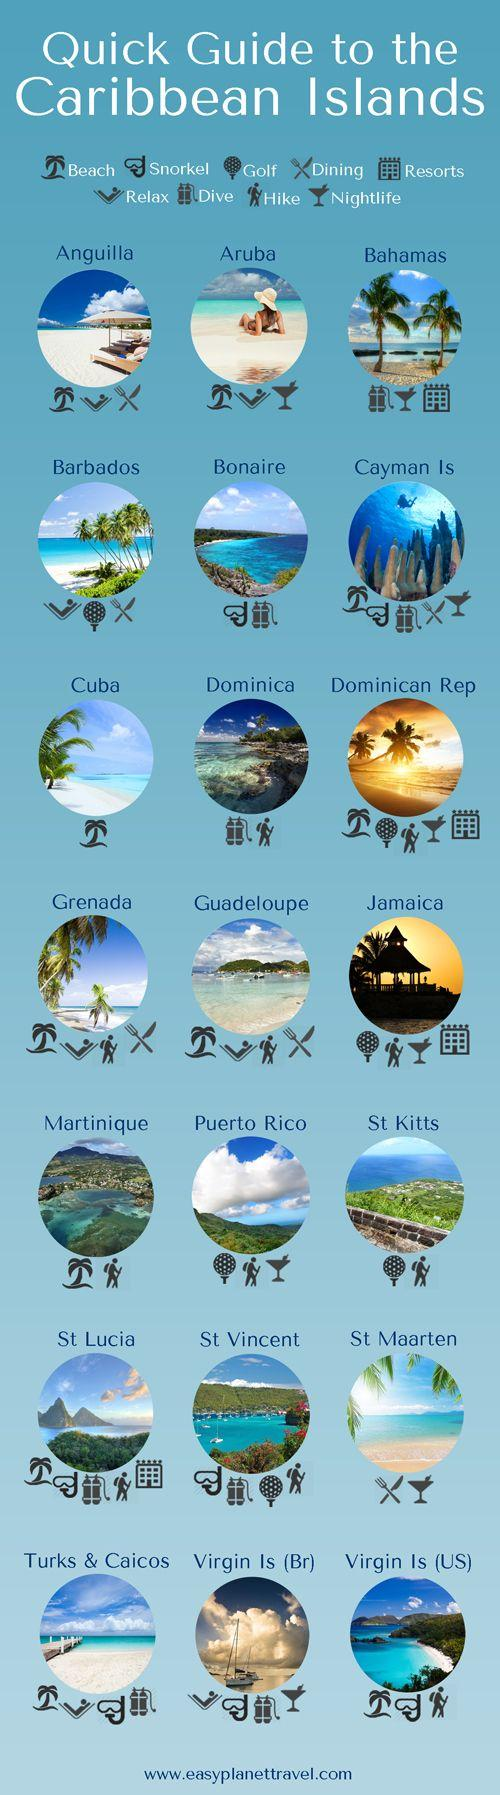 Hochzeit - Quick And Easy Guide To The Best Caribbean Islands